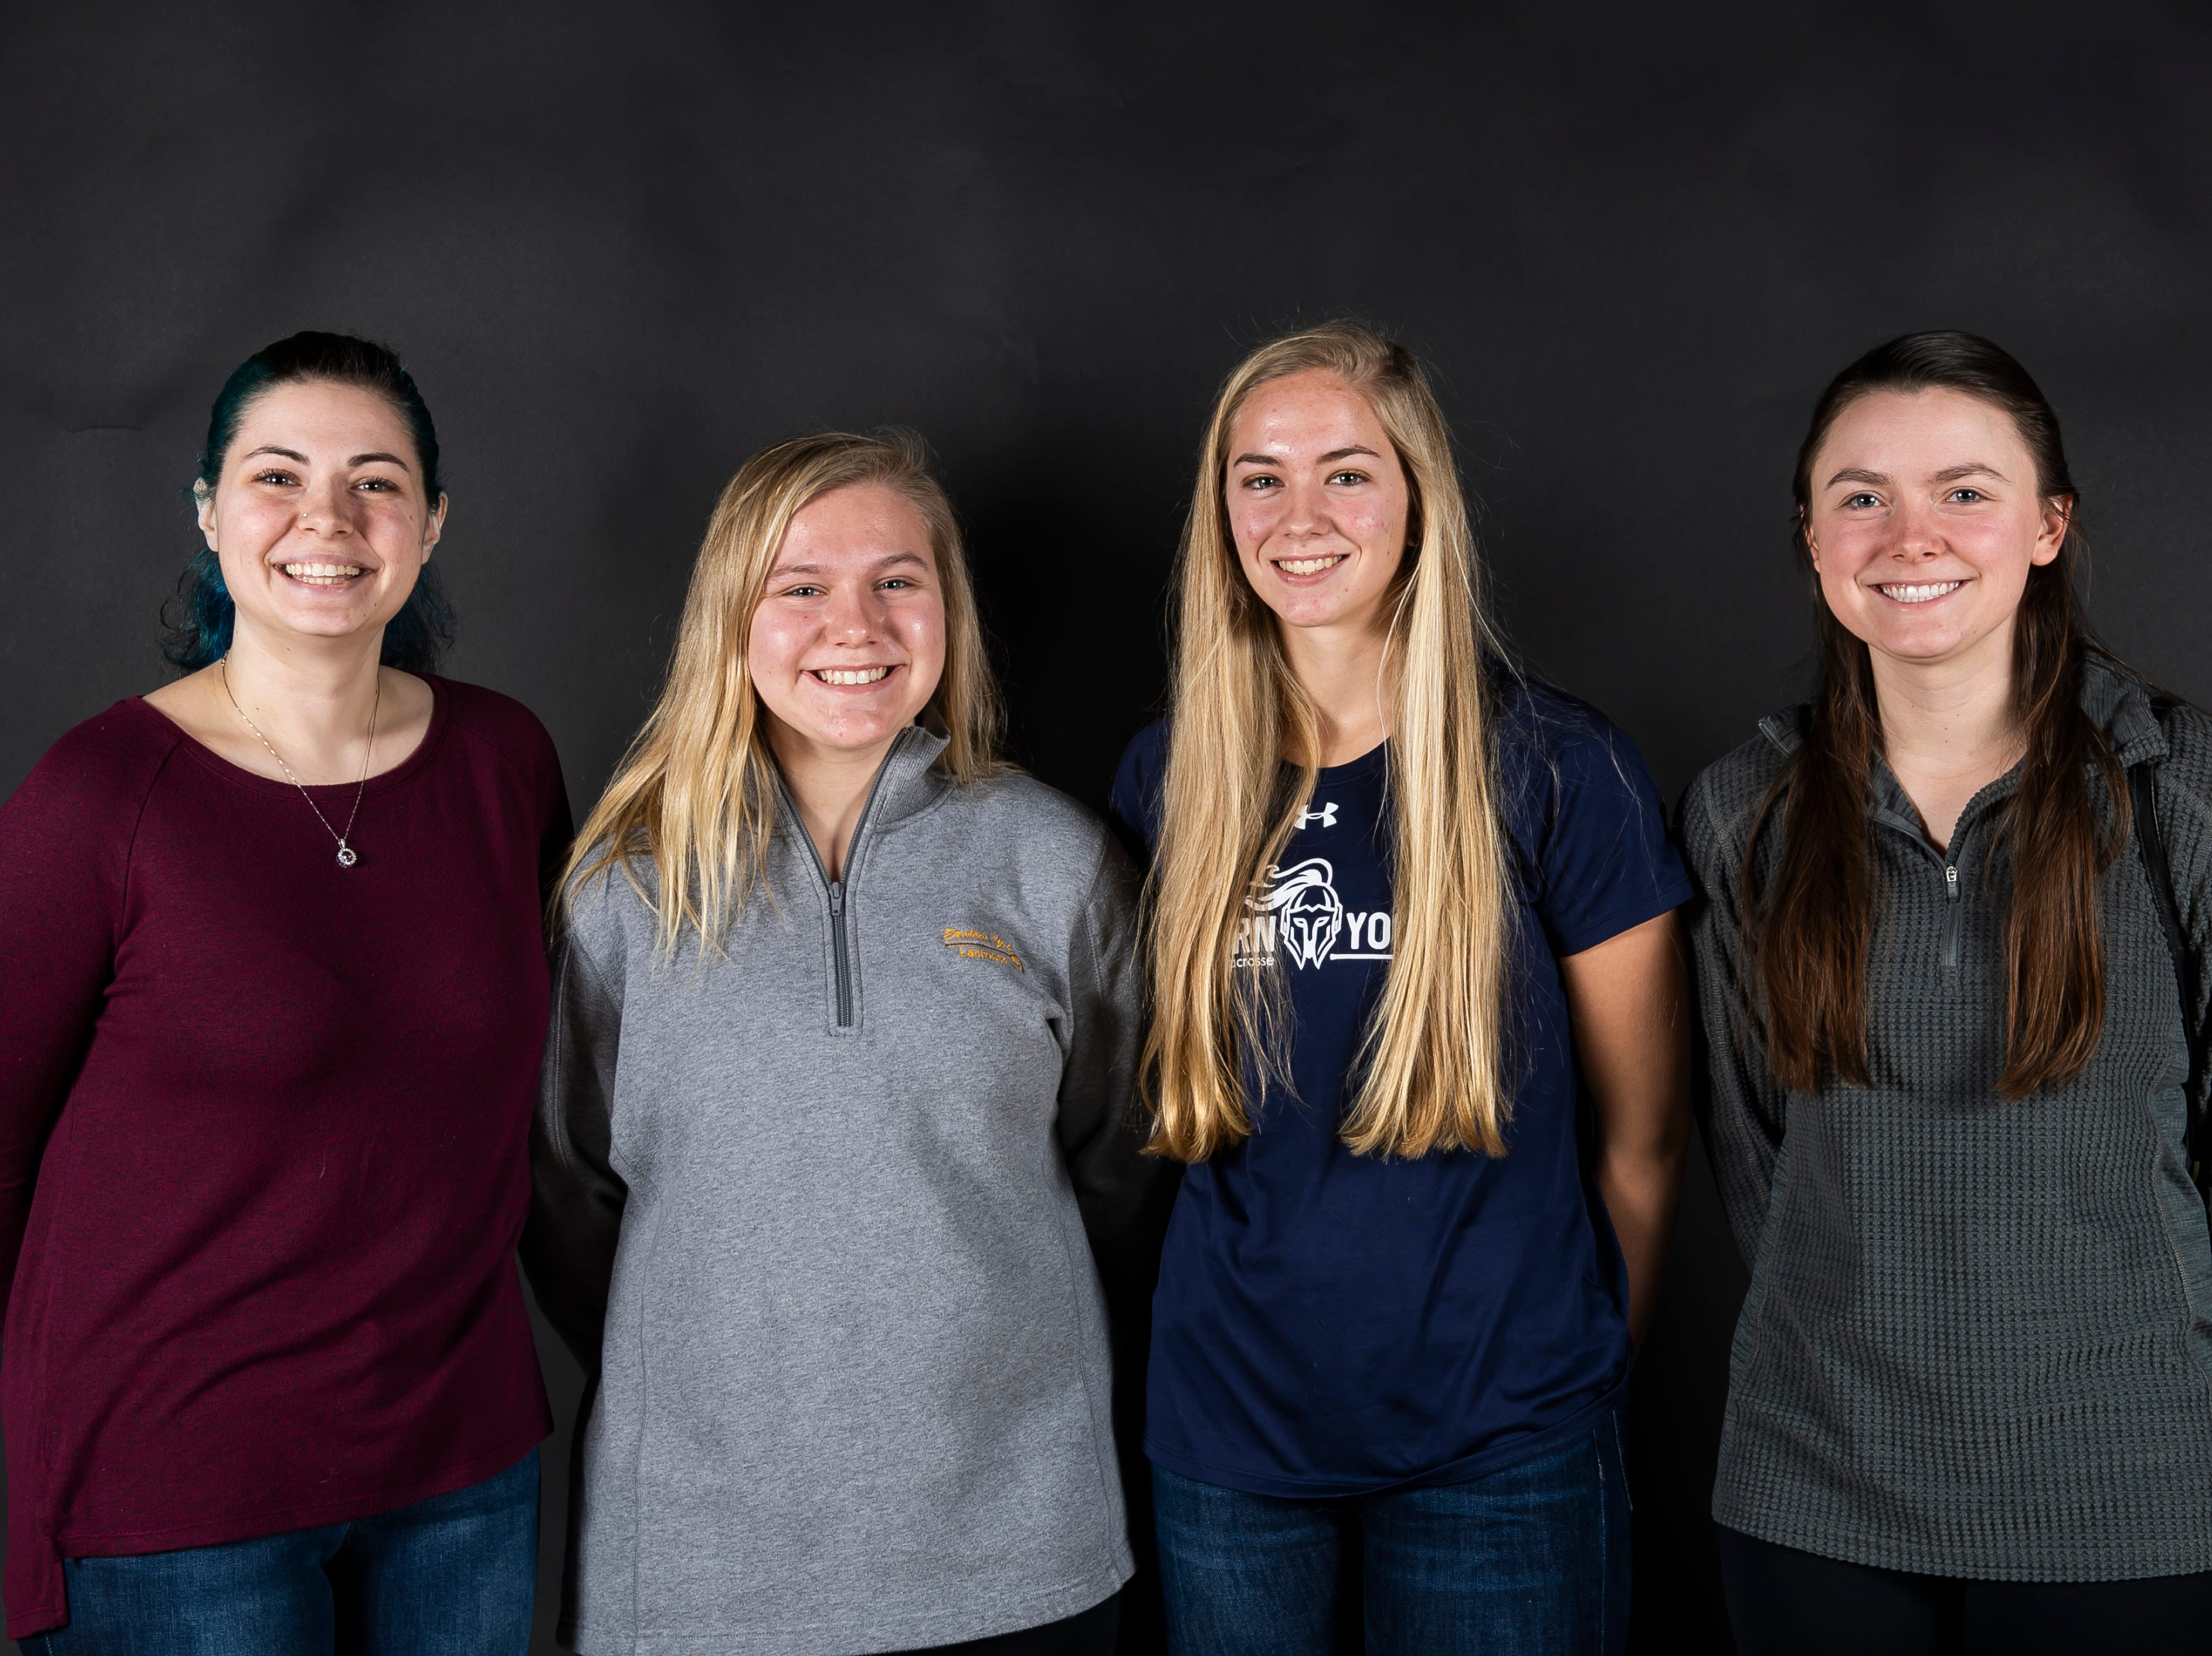 Eastern York lacrosse coaches Rachel Strzelecki, far left, and Jessica Mazzur, far right, pose with players Haley Holtzinger and Addison Malone in the GameTimePA photo booth during spring sports media day in York Sunday, March 10, 2019.